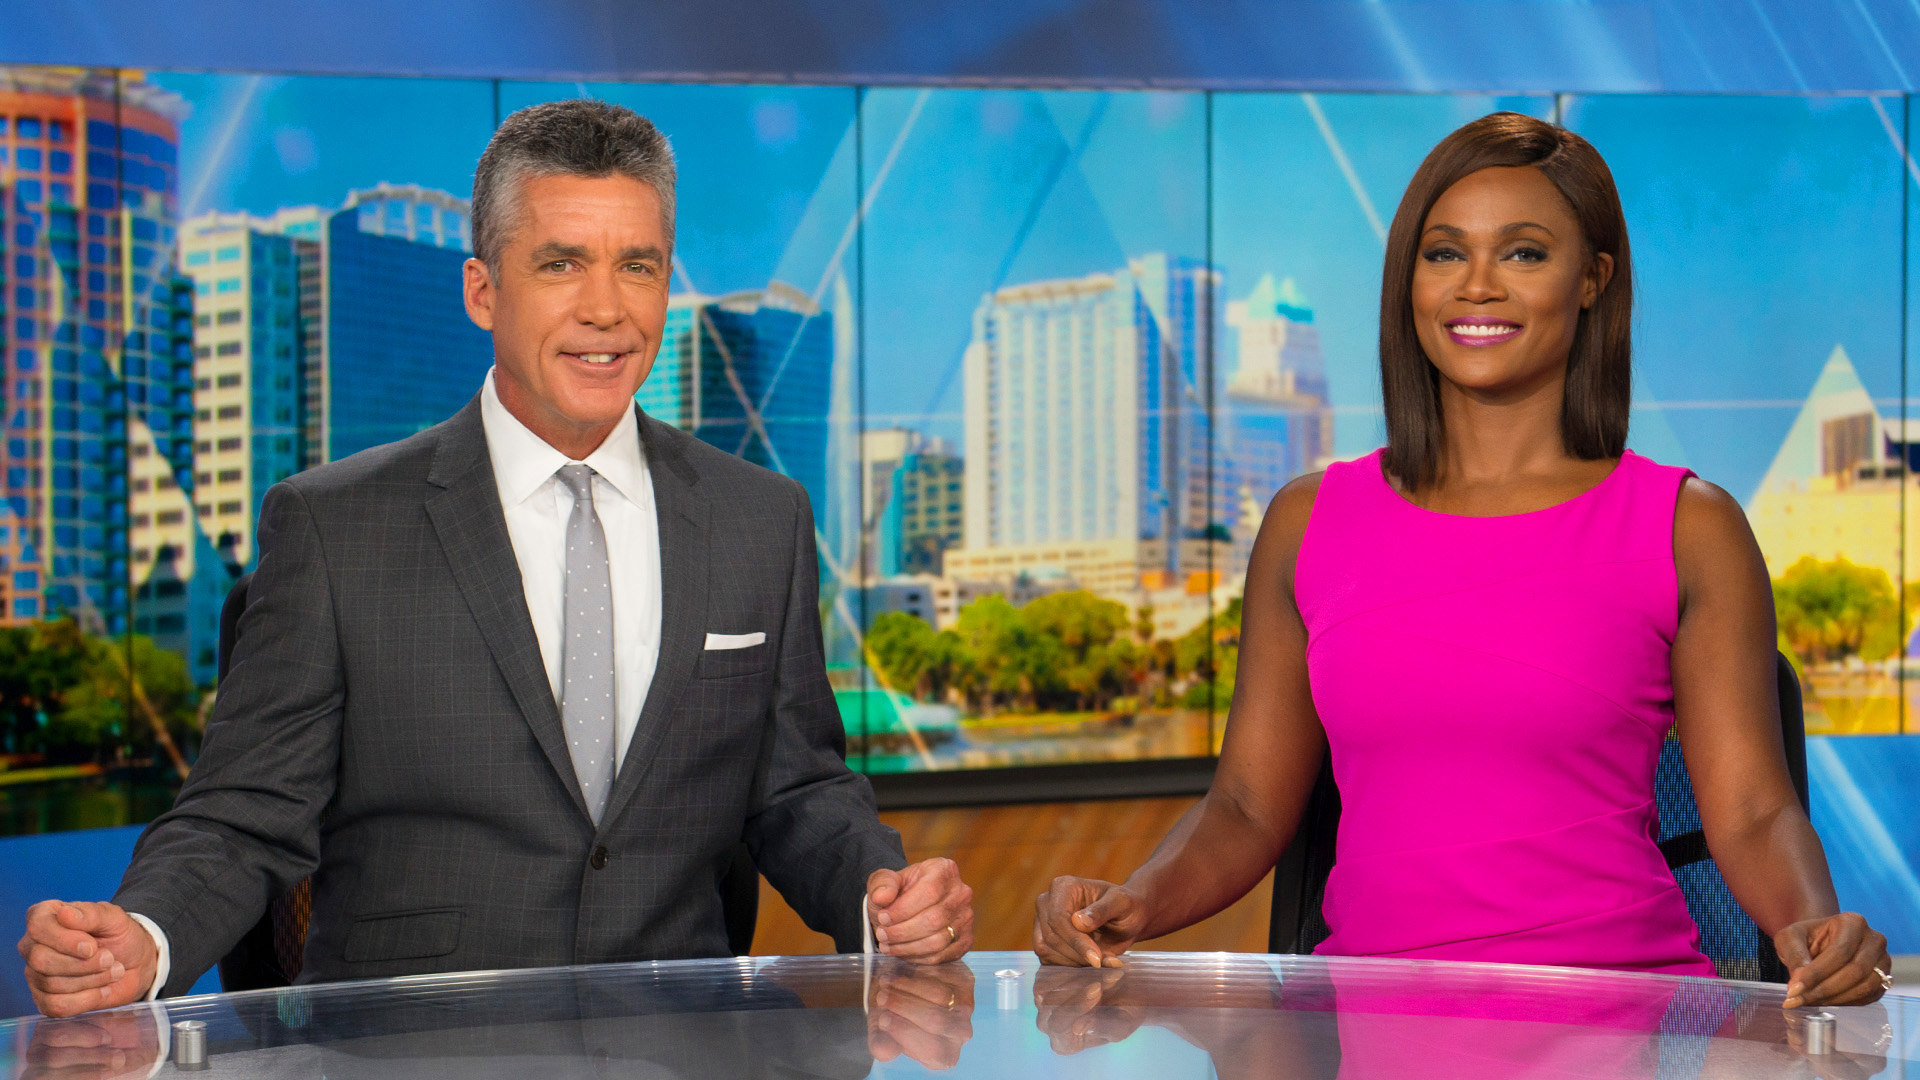 ncs_wesh-2-news-tv-studio-devlin_0010